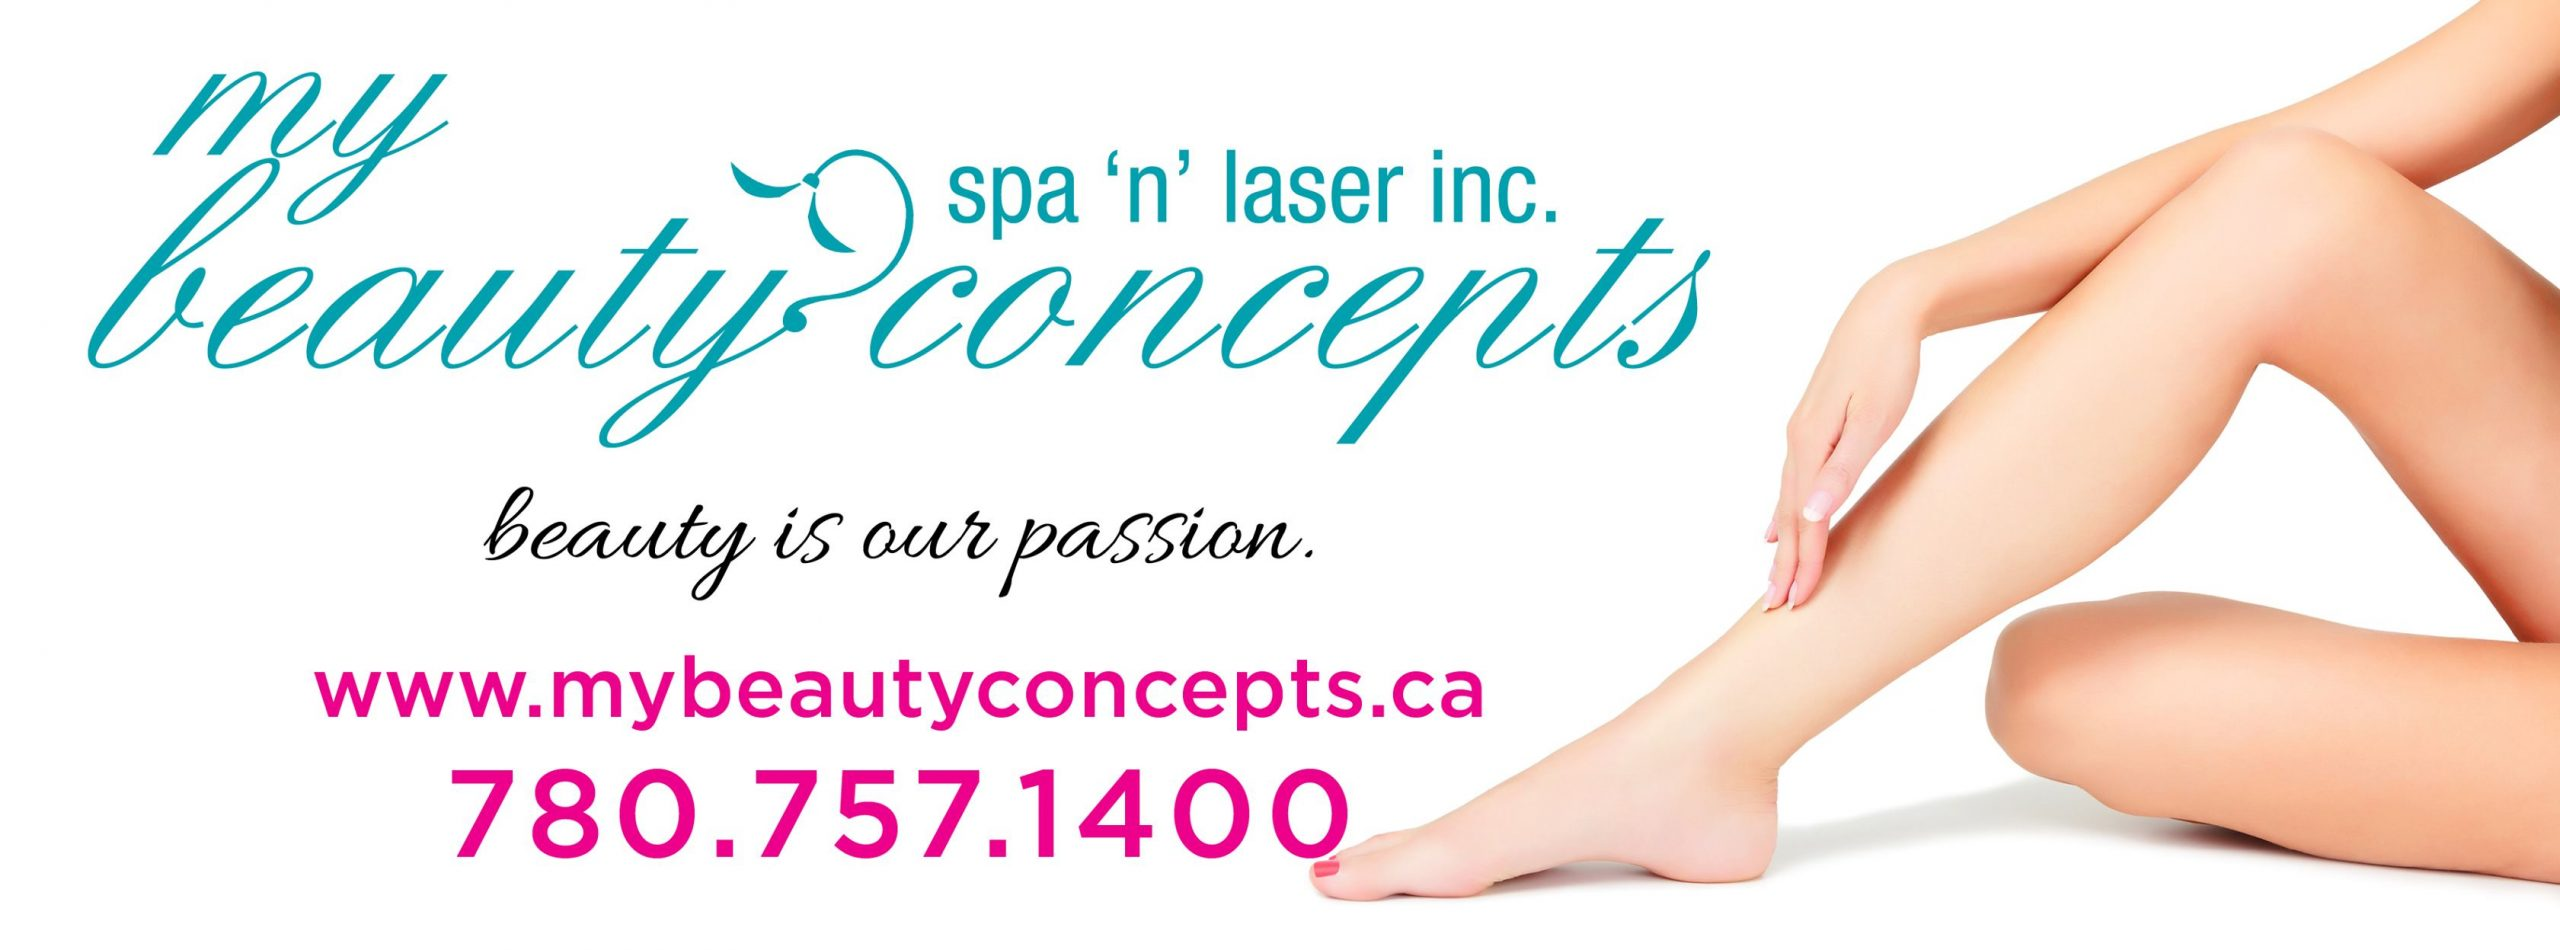 My Beauty Concepts Spa 'n' Laser